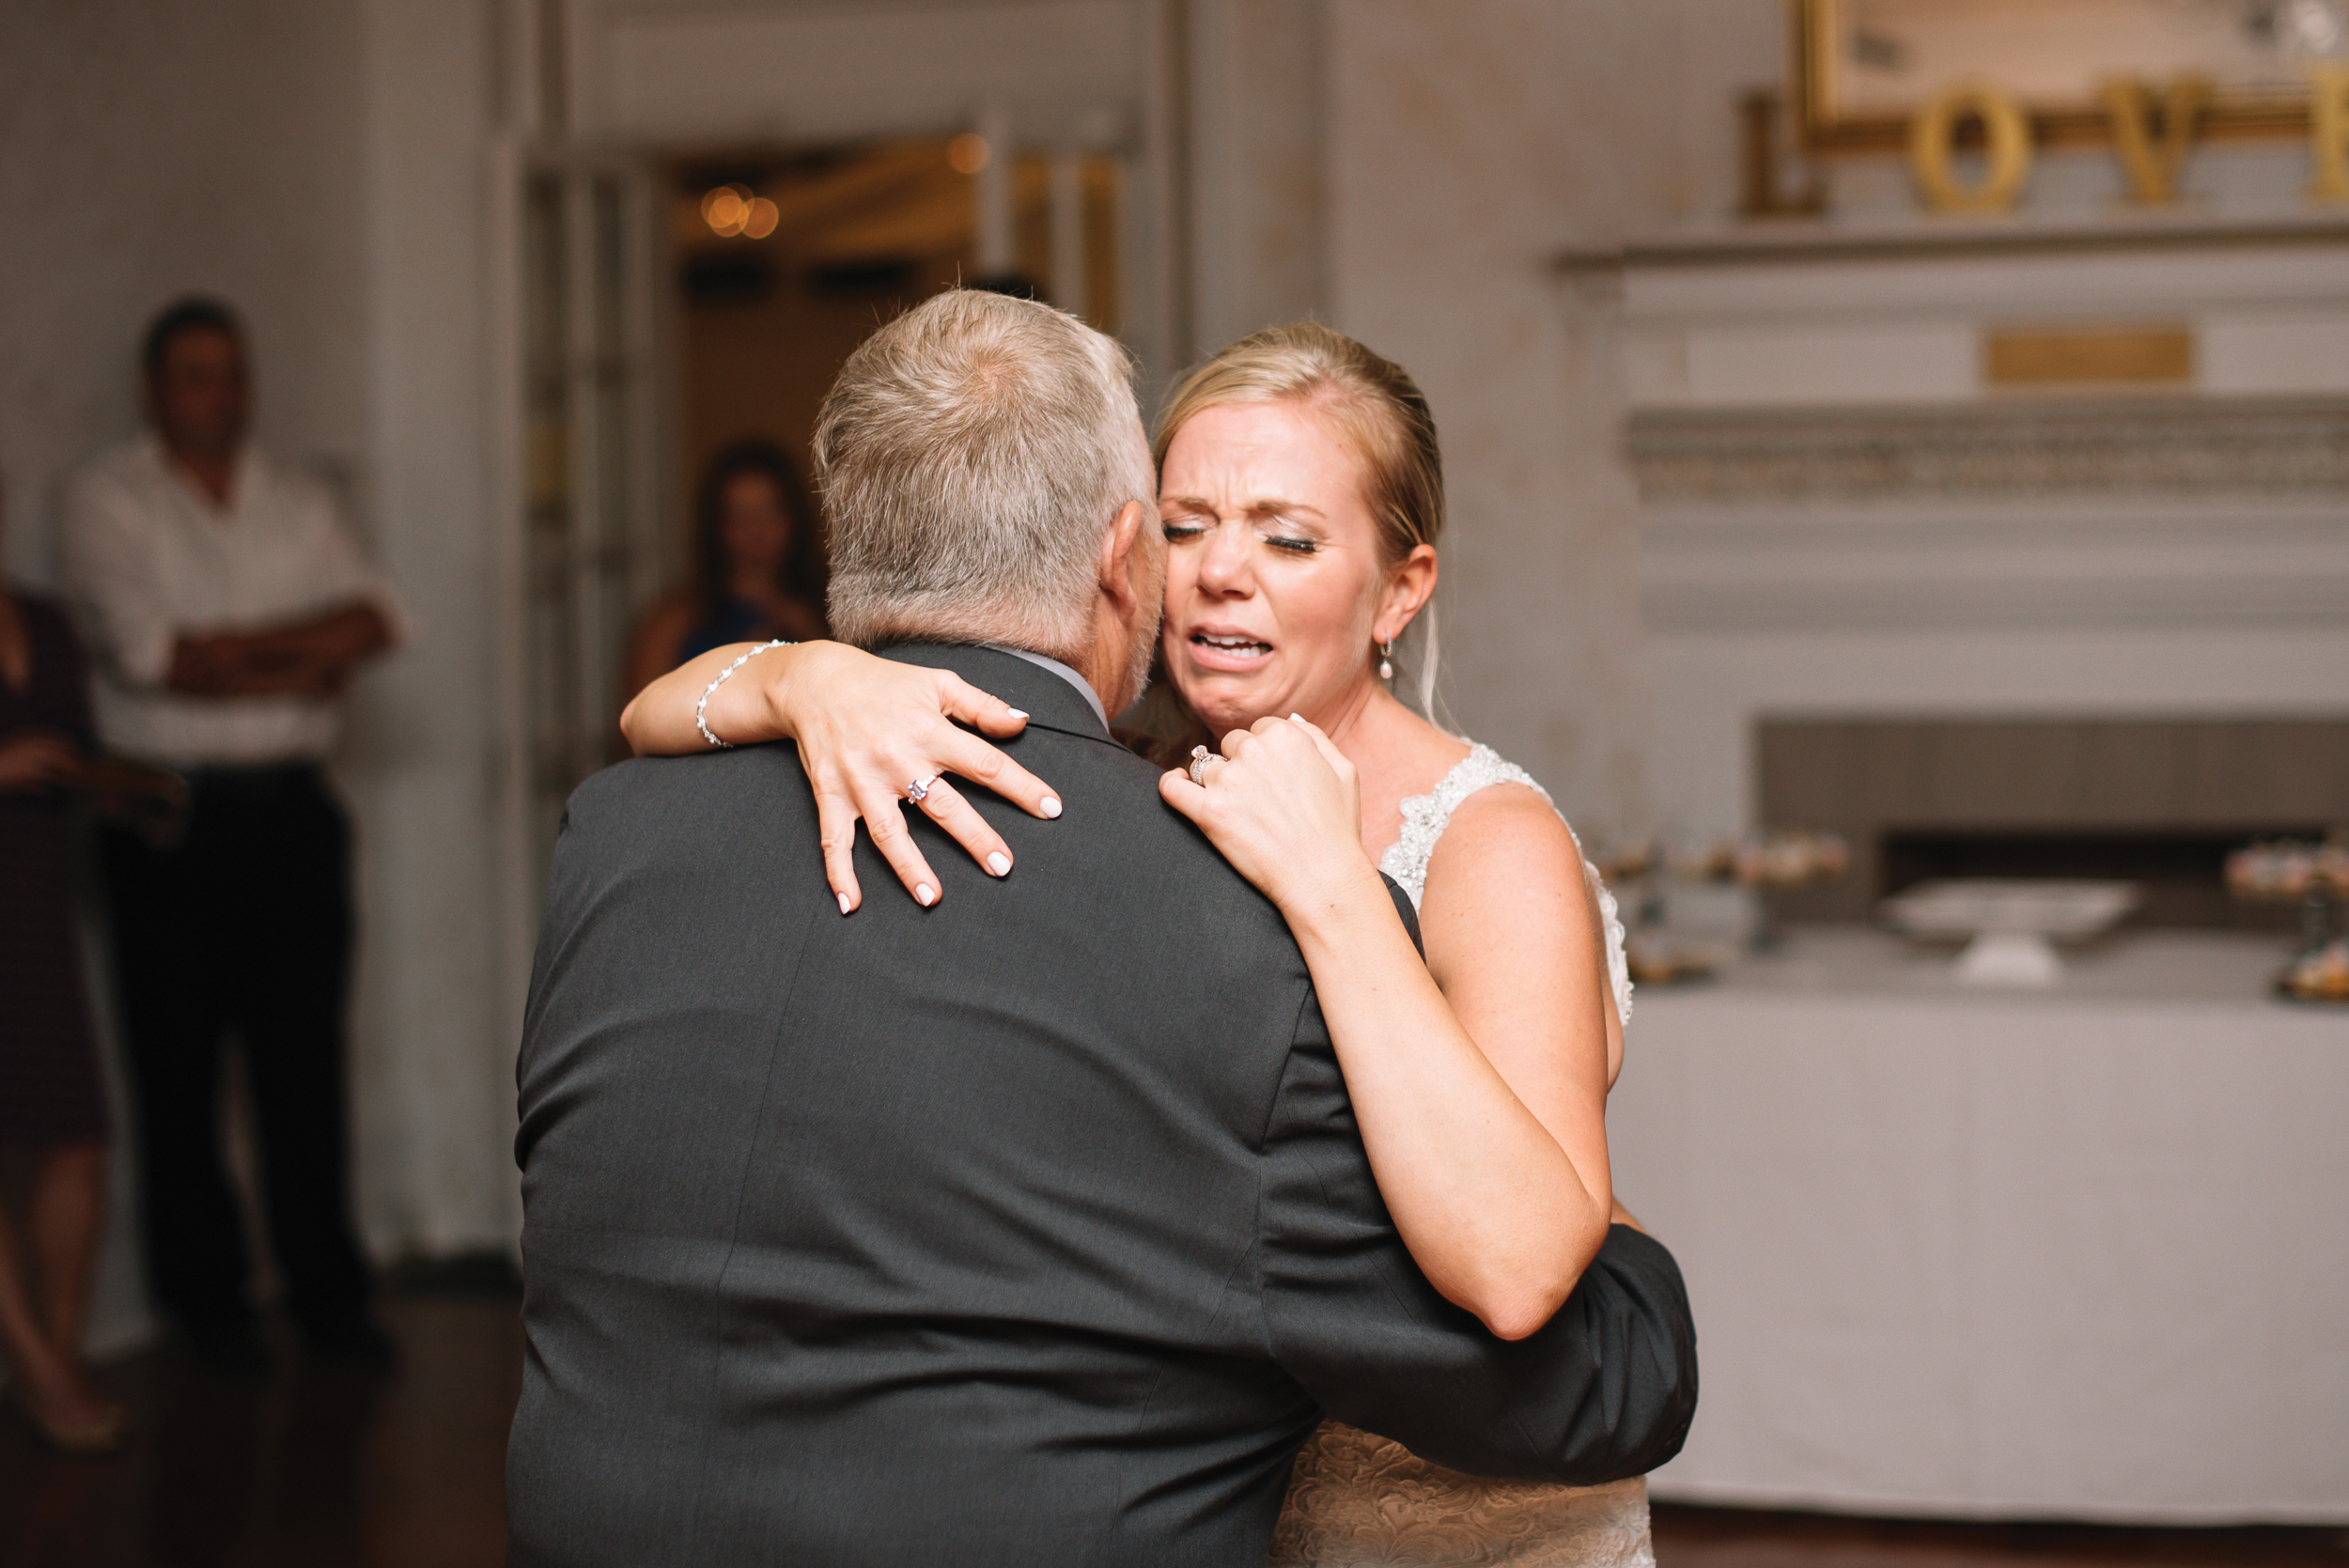 There was SO MUCH love at this wedding. It was truly a special event.